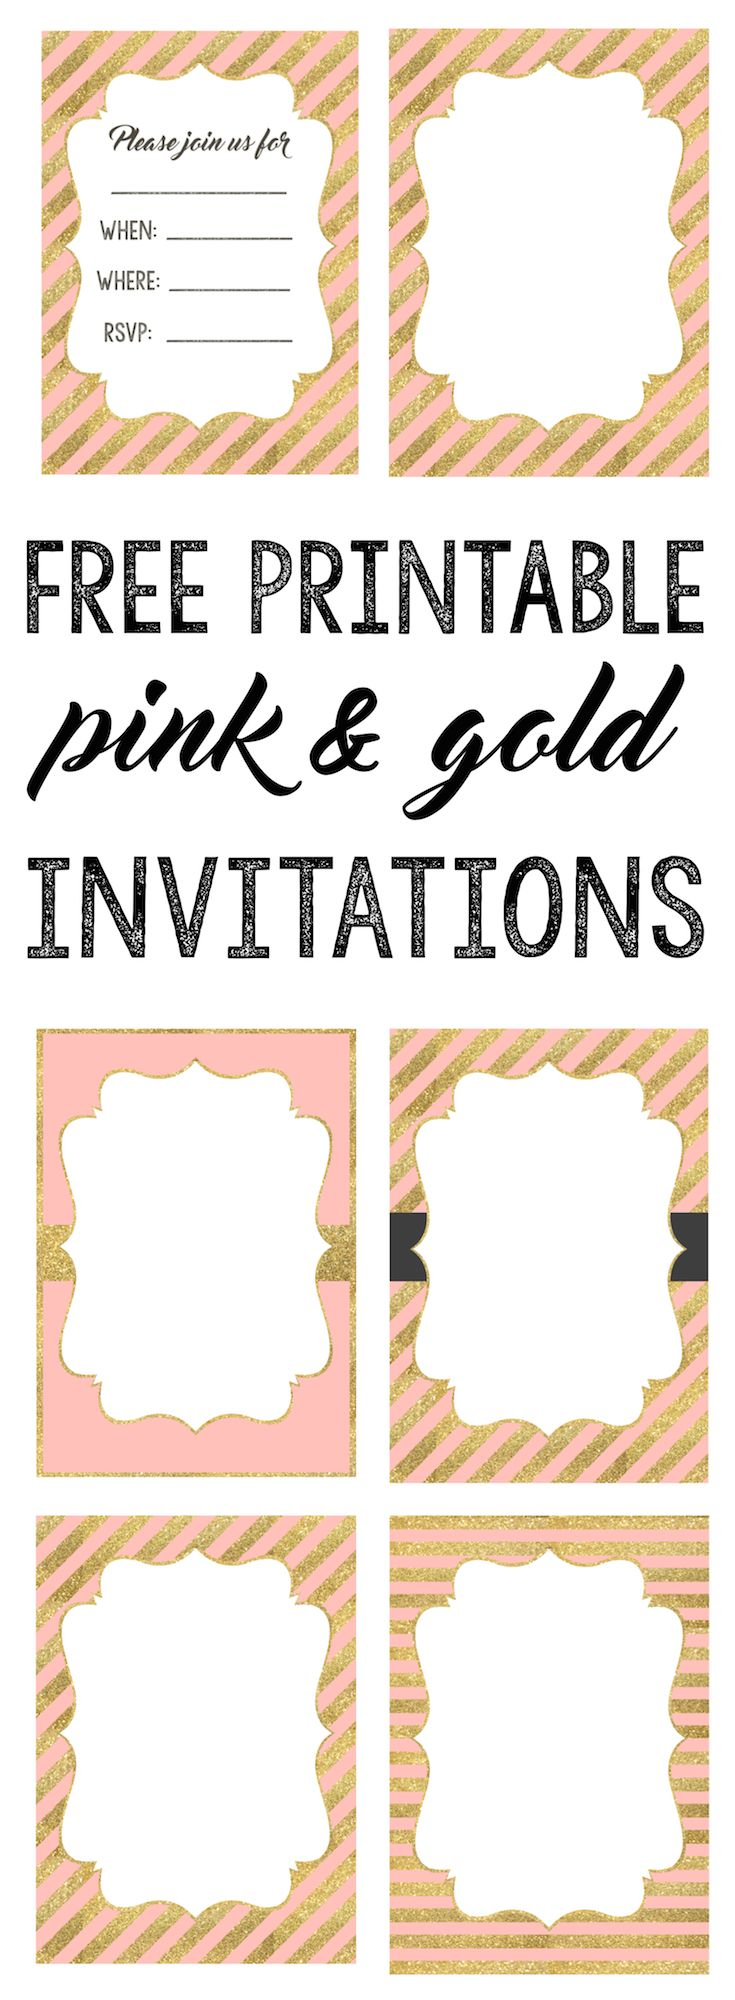 Pink And Gold Invitations Free Printable Select A Pink In 2020 Pink And Gold Invitations Free Printable Birthday Invitations Bridal Shower Invitations Printable Free